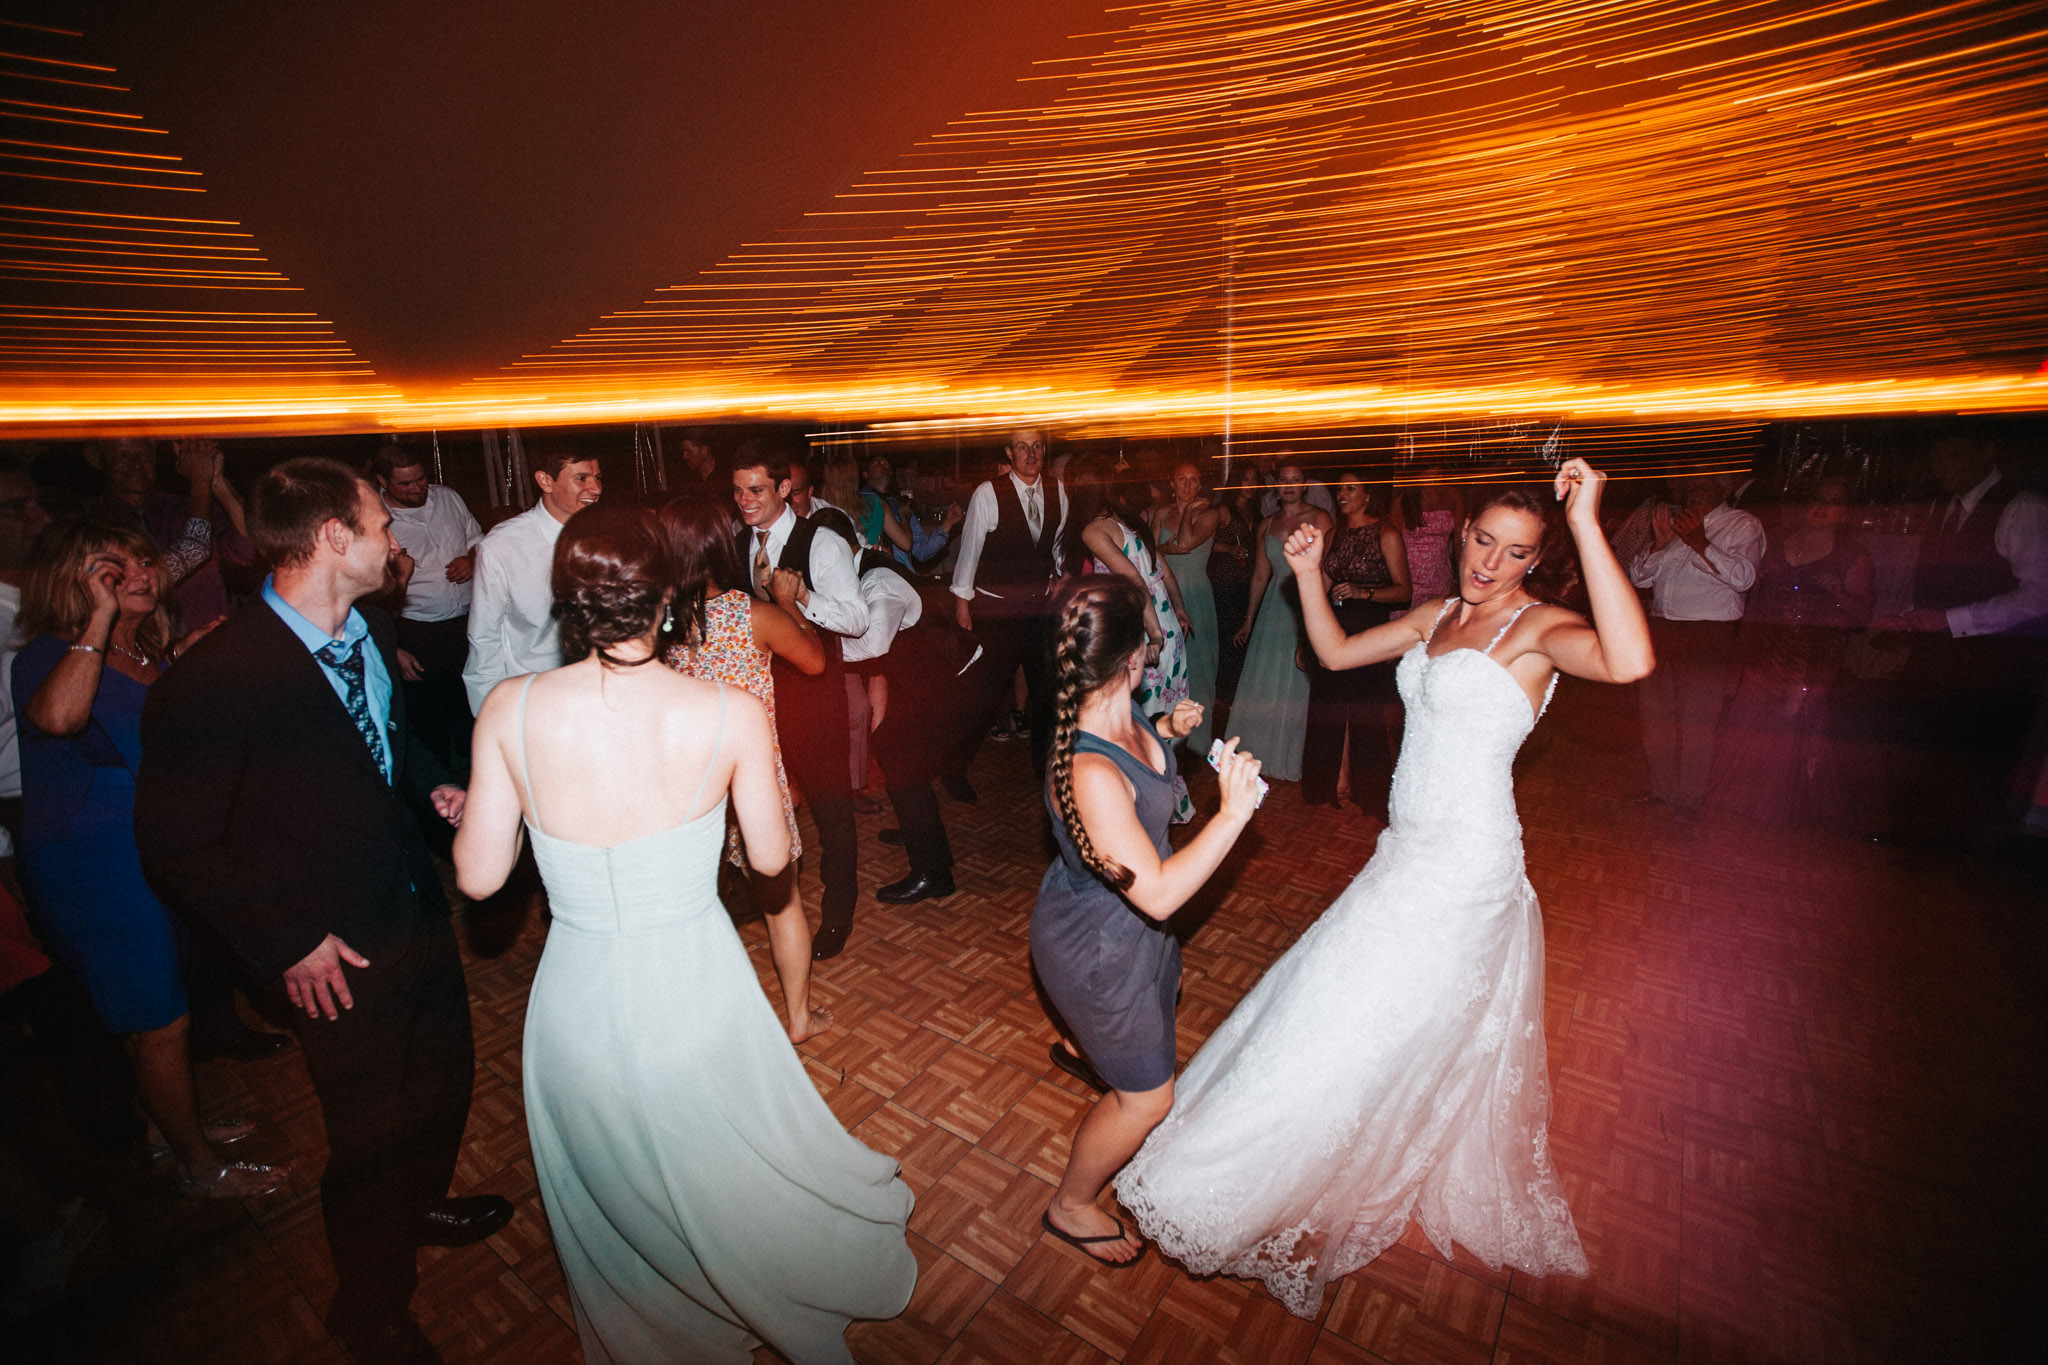 we always dance with our couples.